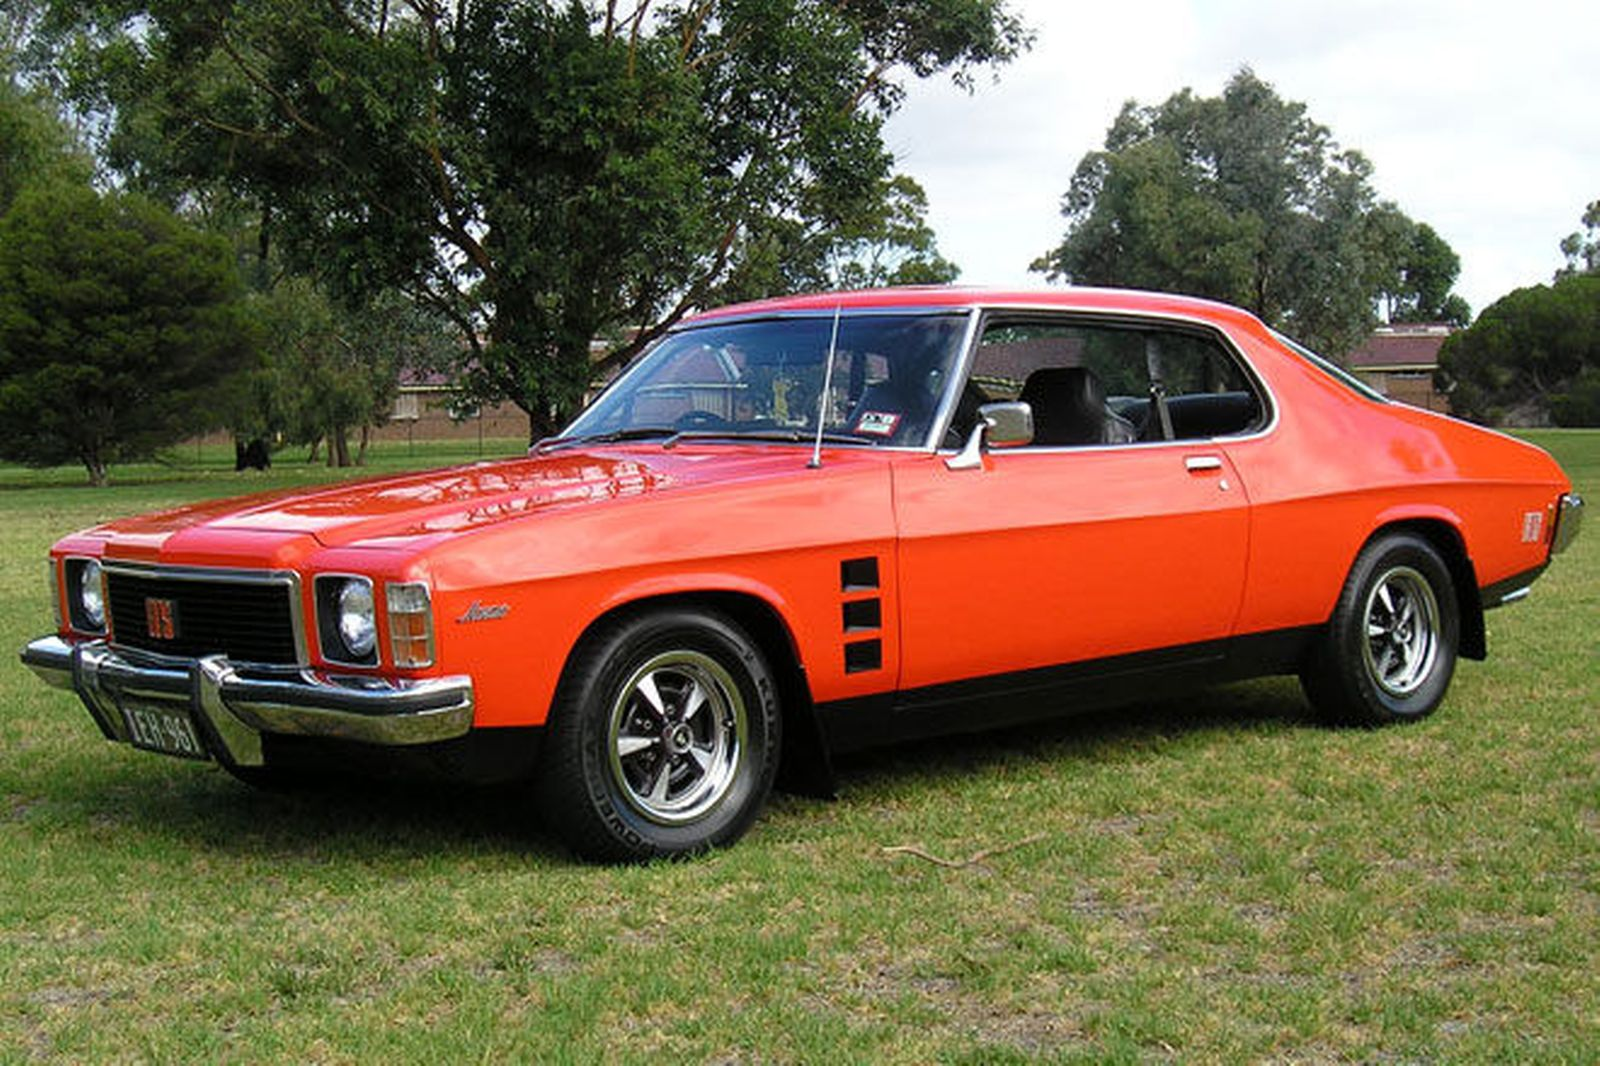 Aussie Cars - 1970 to 1980 - Resto my Ride